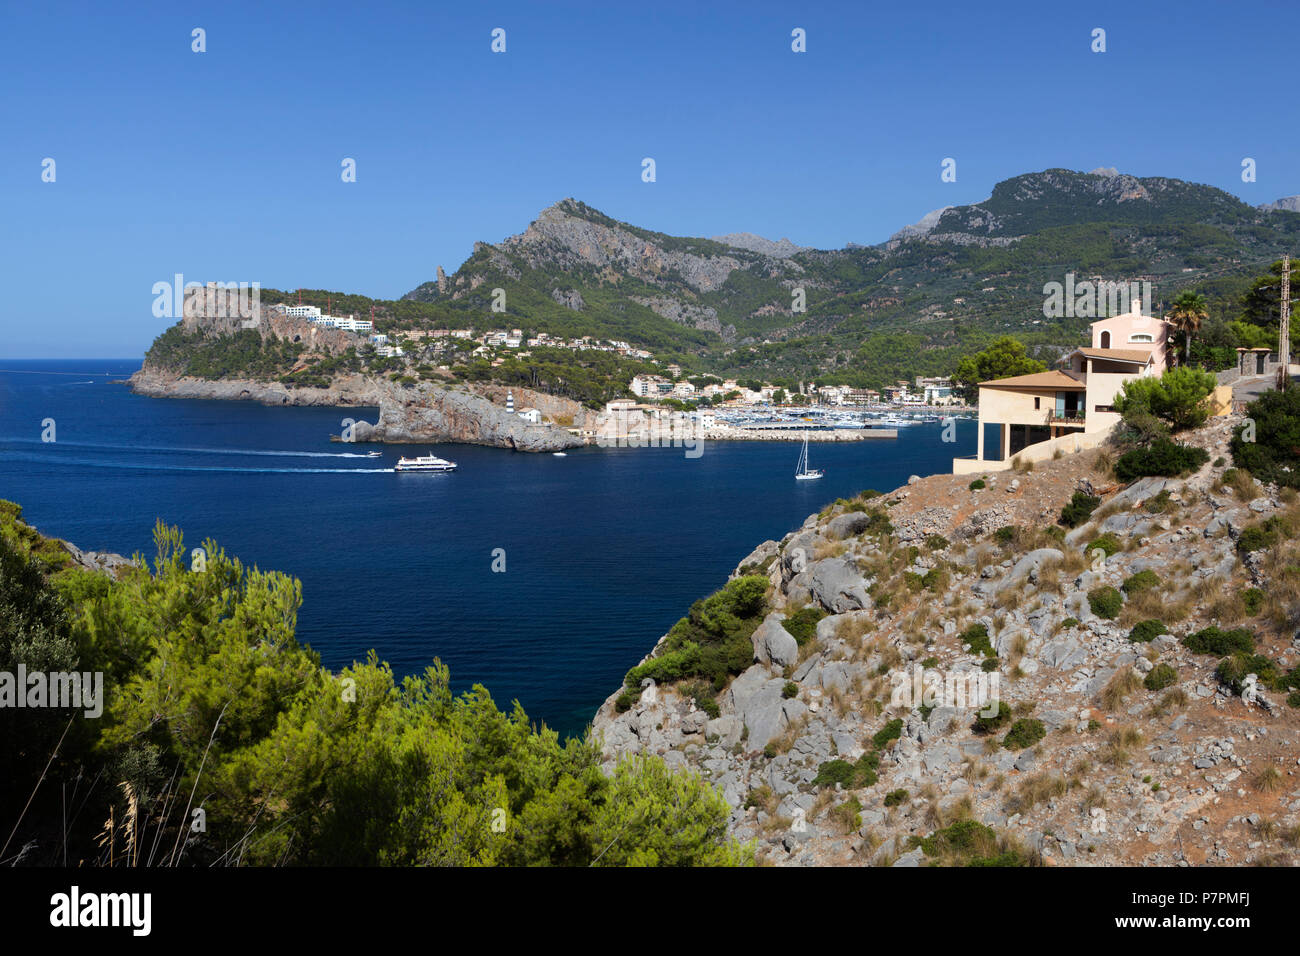 View over bay and harbour - Stock Image